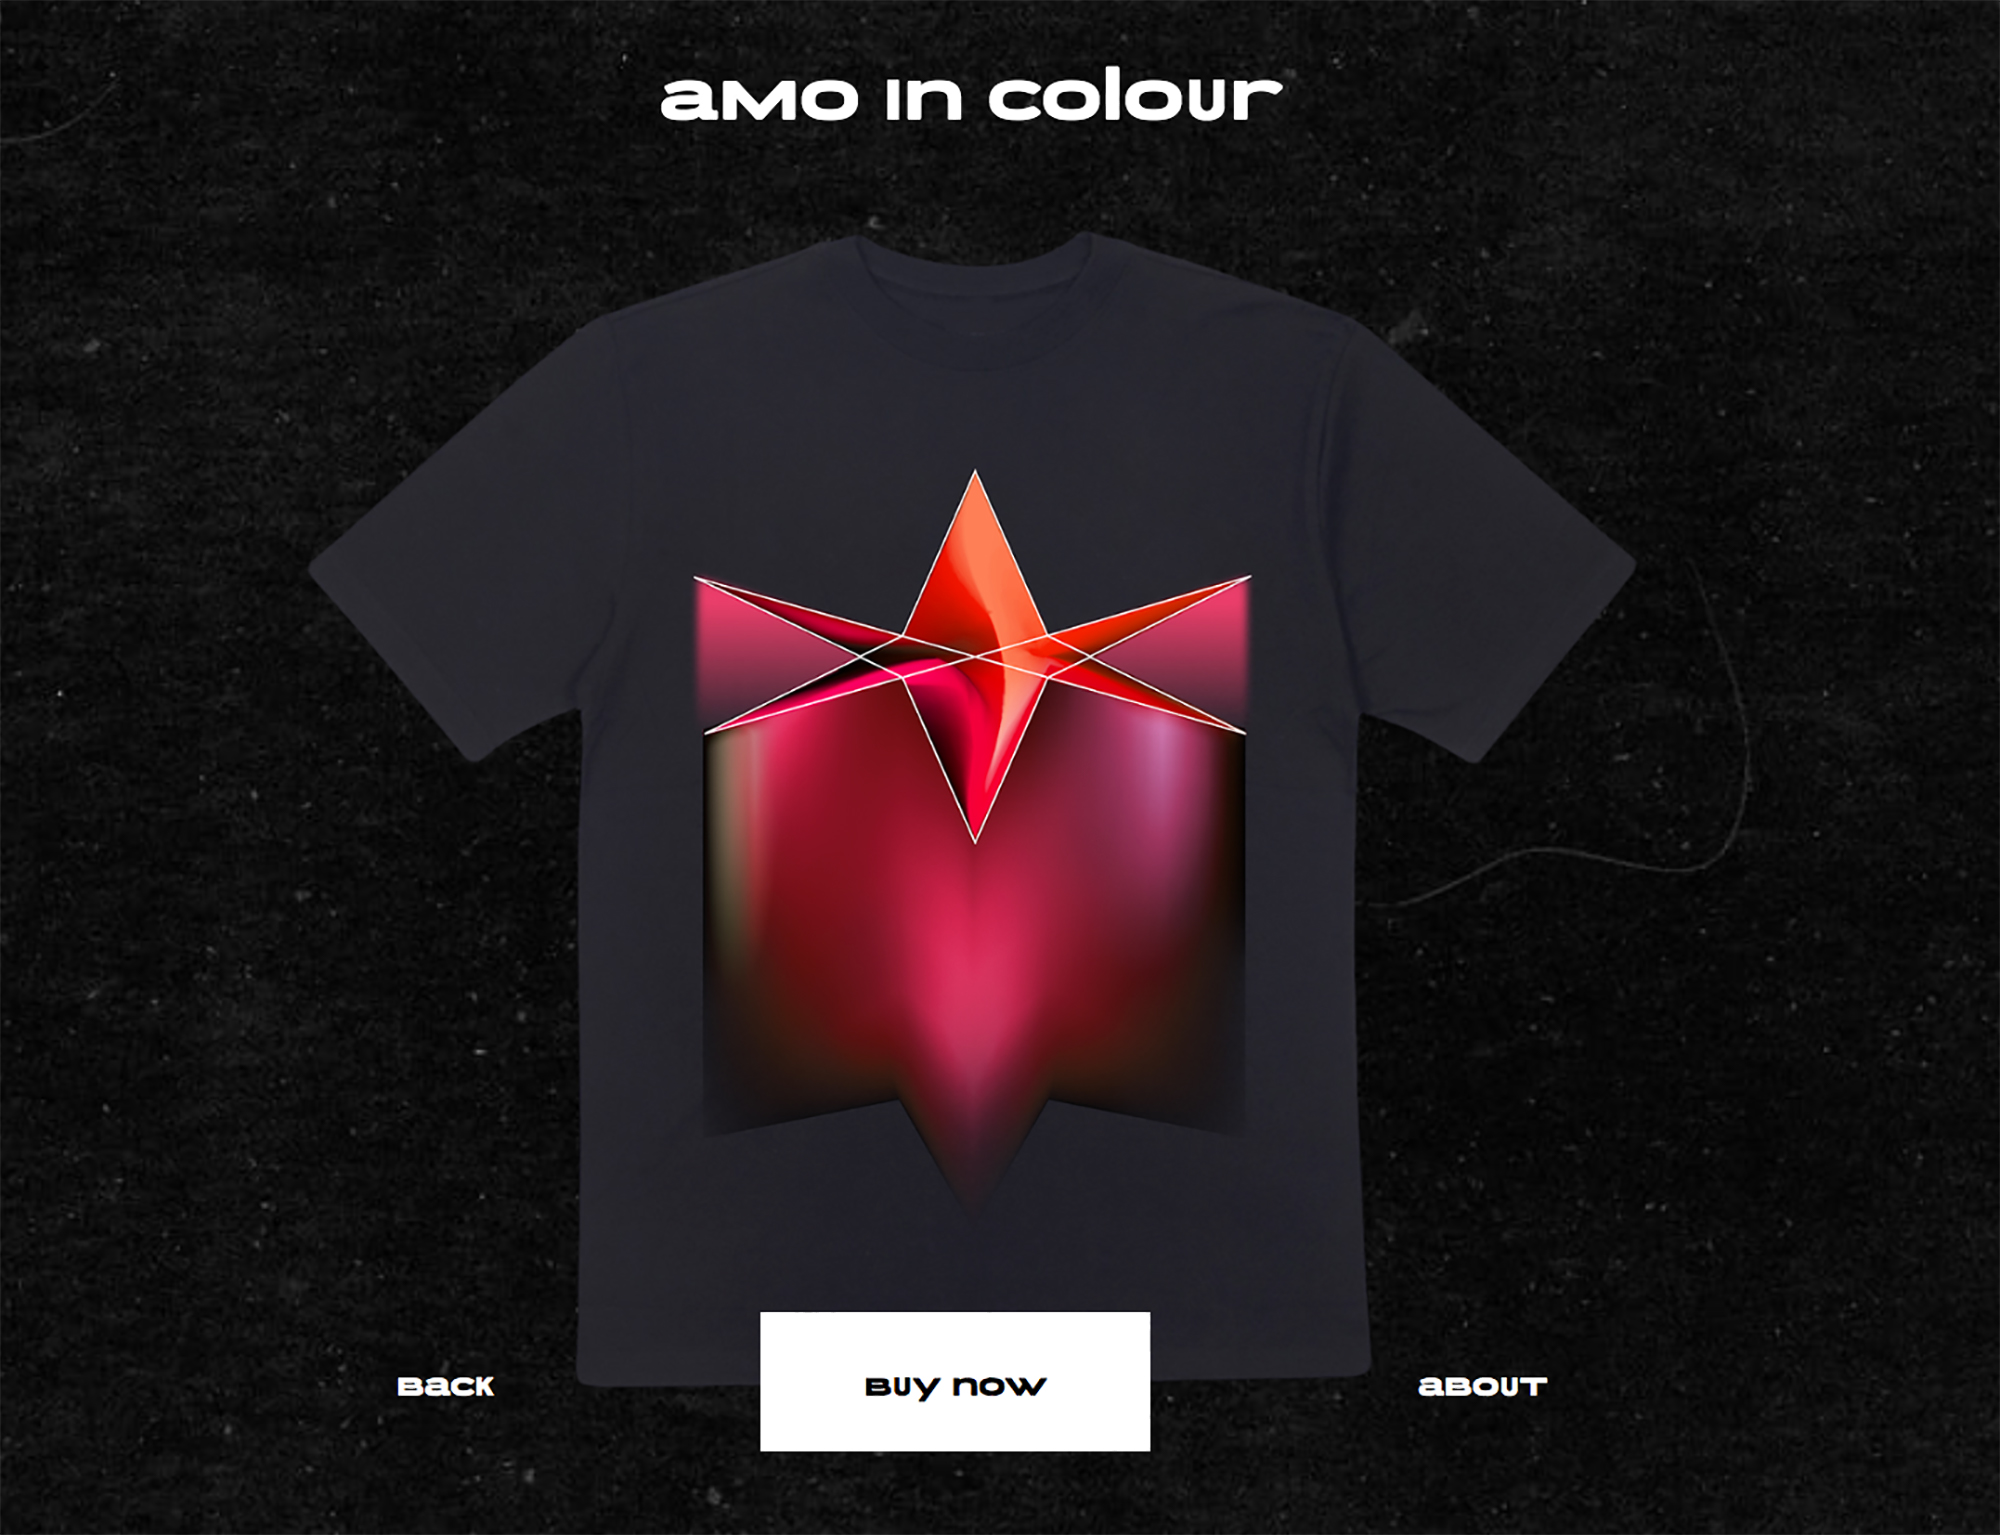 Bring Me The Horizon, Amo in Colour customised merch